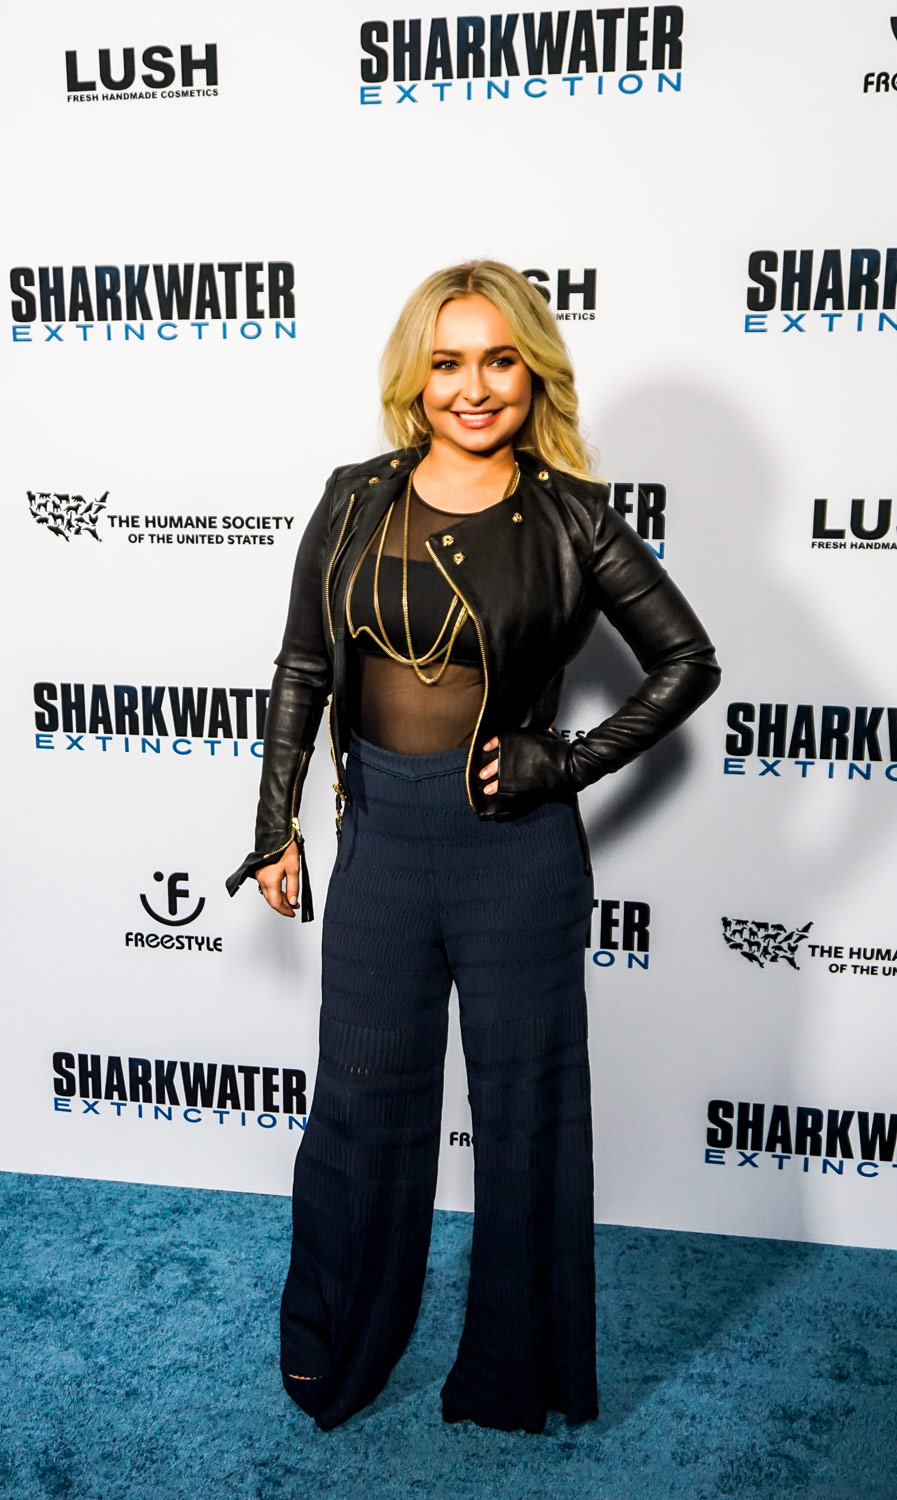 Hayden Panettiere at Sharkwater Extinction premiere